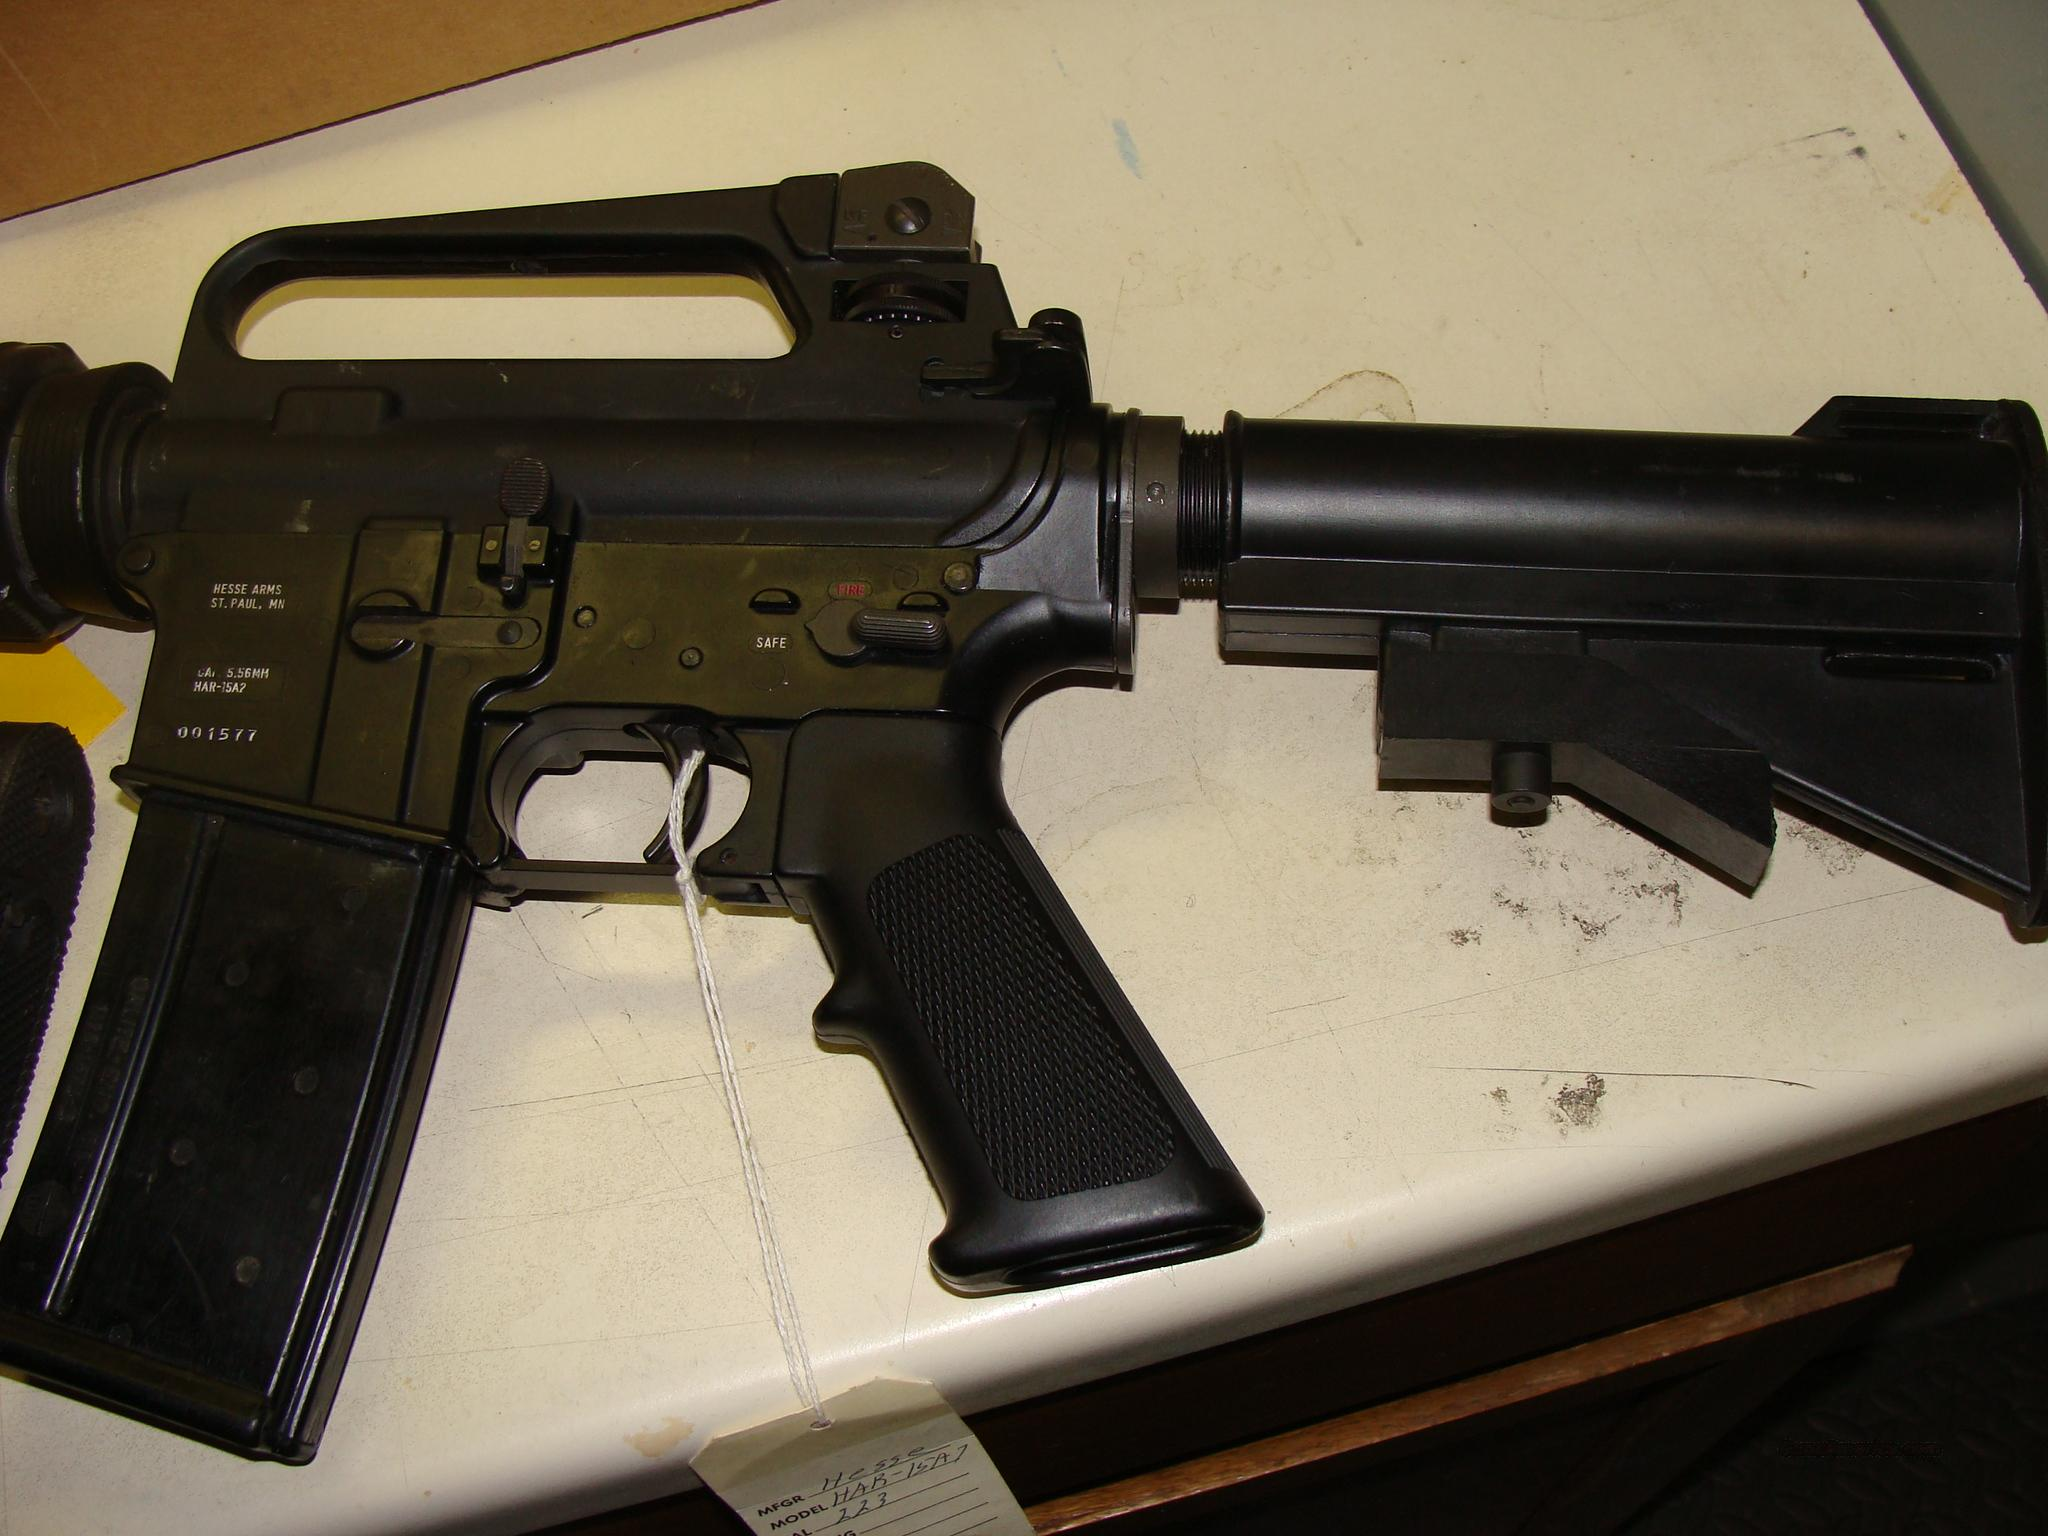 HESSE ARMS AR-15  Guns > Rifles > AR-15 Rifles - Small Manufacturers > Complete Rifle